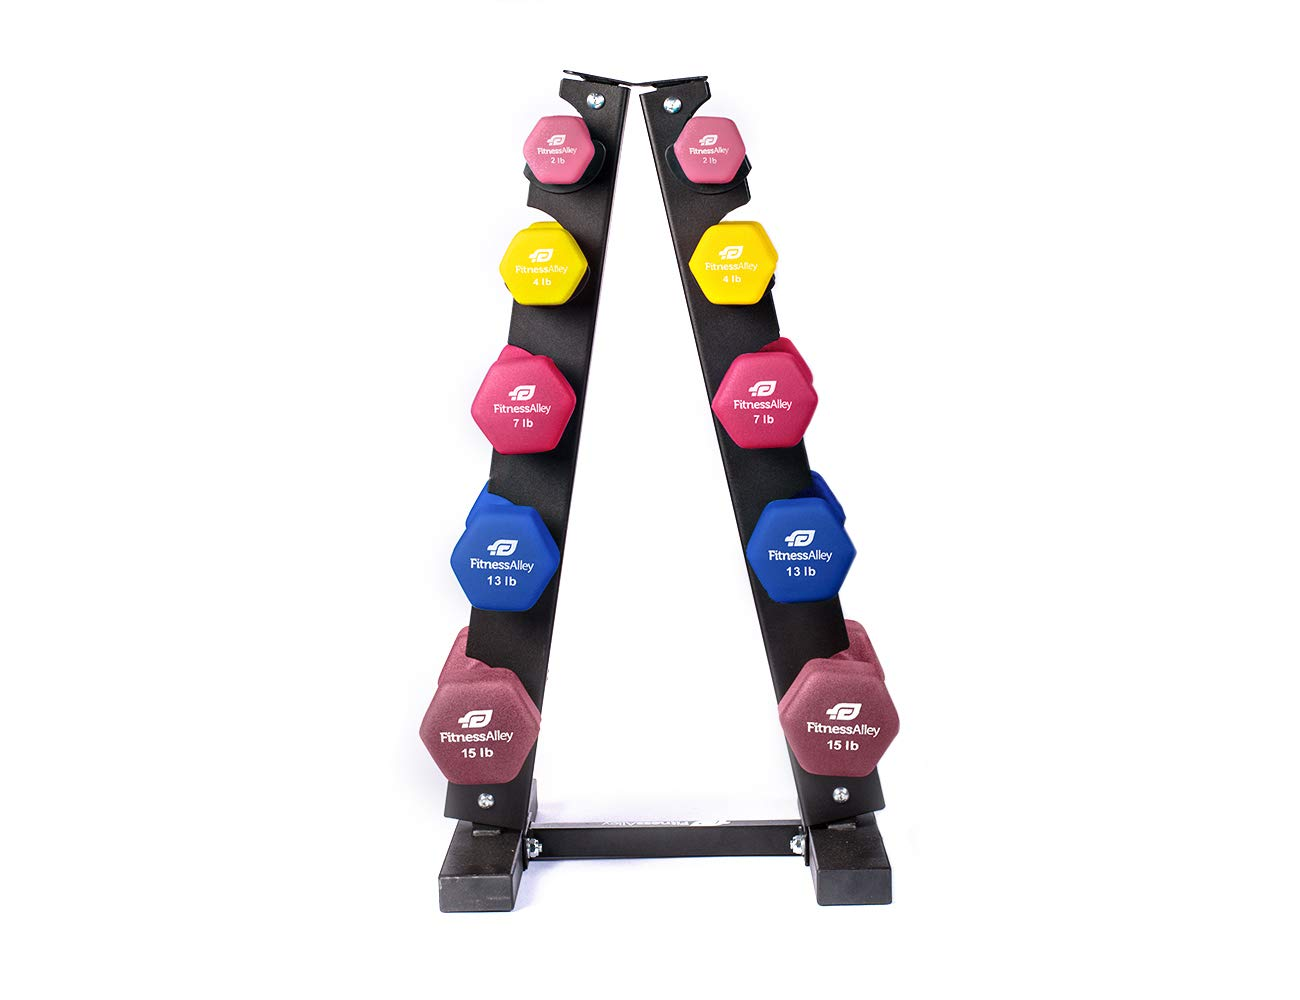 Fitness Alley Neoprene Dumbbells A Frame Rack - Free Weights Hex Hand Weights - Gym Exercise 5 Pairs Set (2lb, 4lb, 7lb, 13lb, 15lb) with 5 Tier Rack